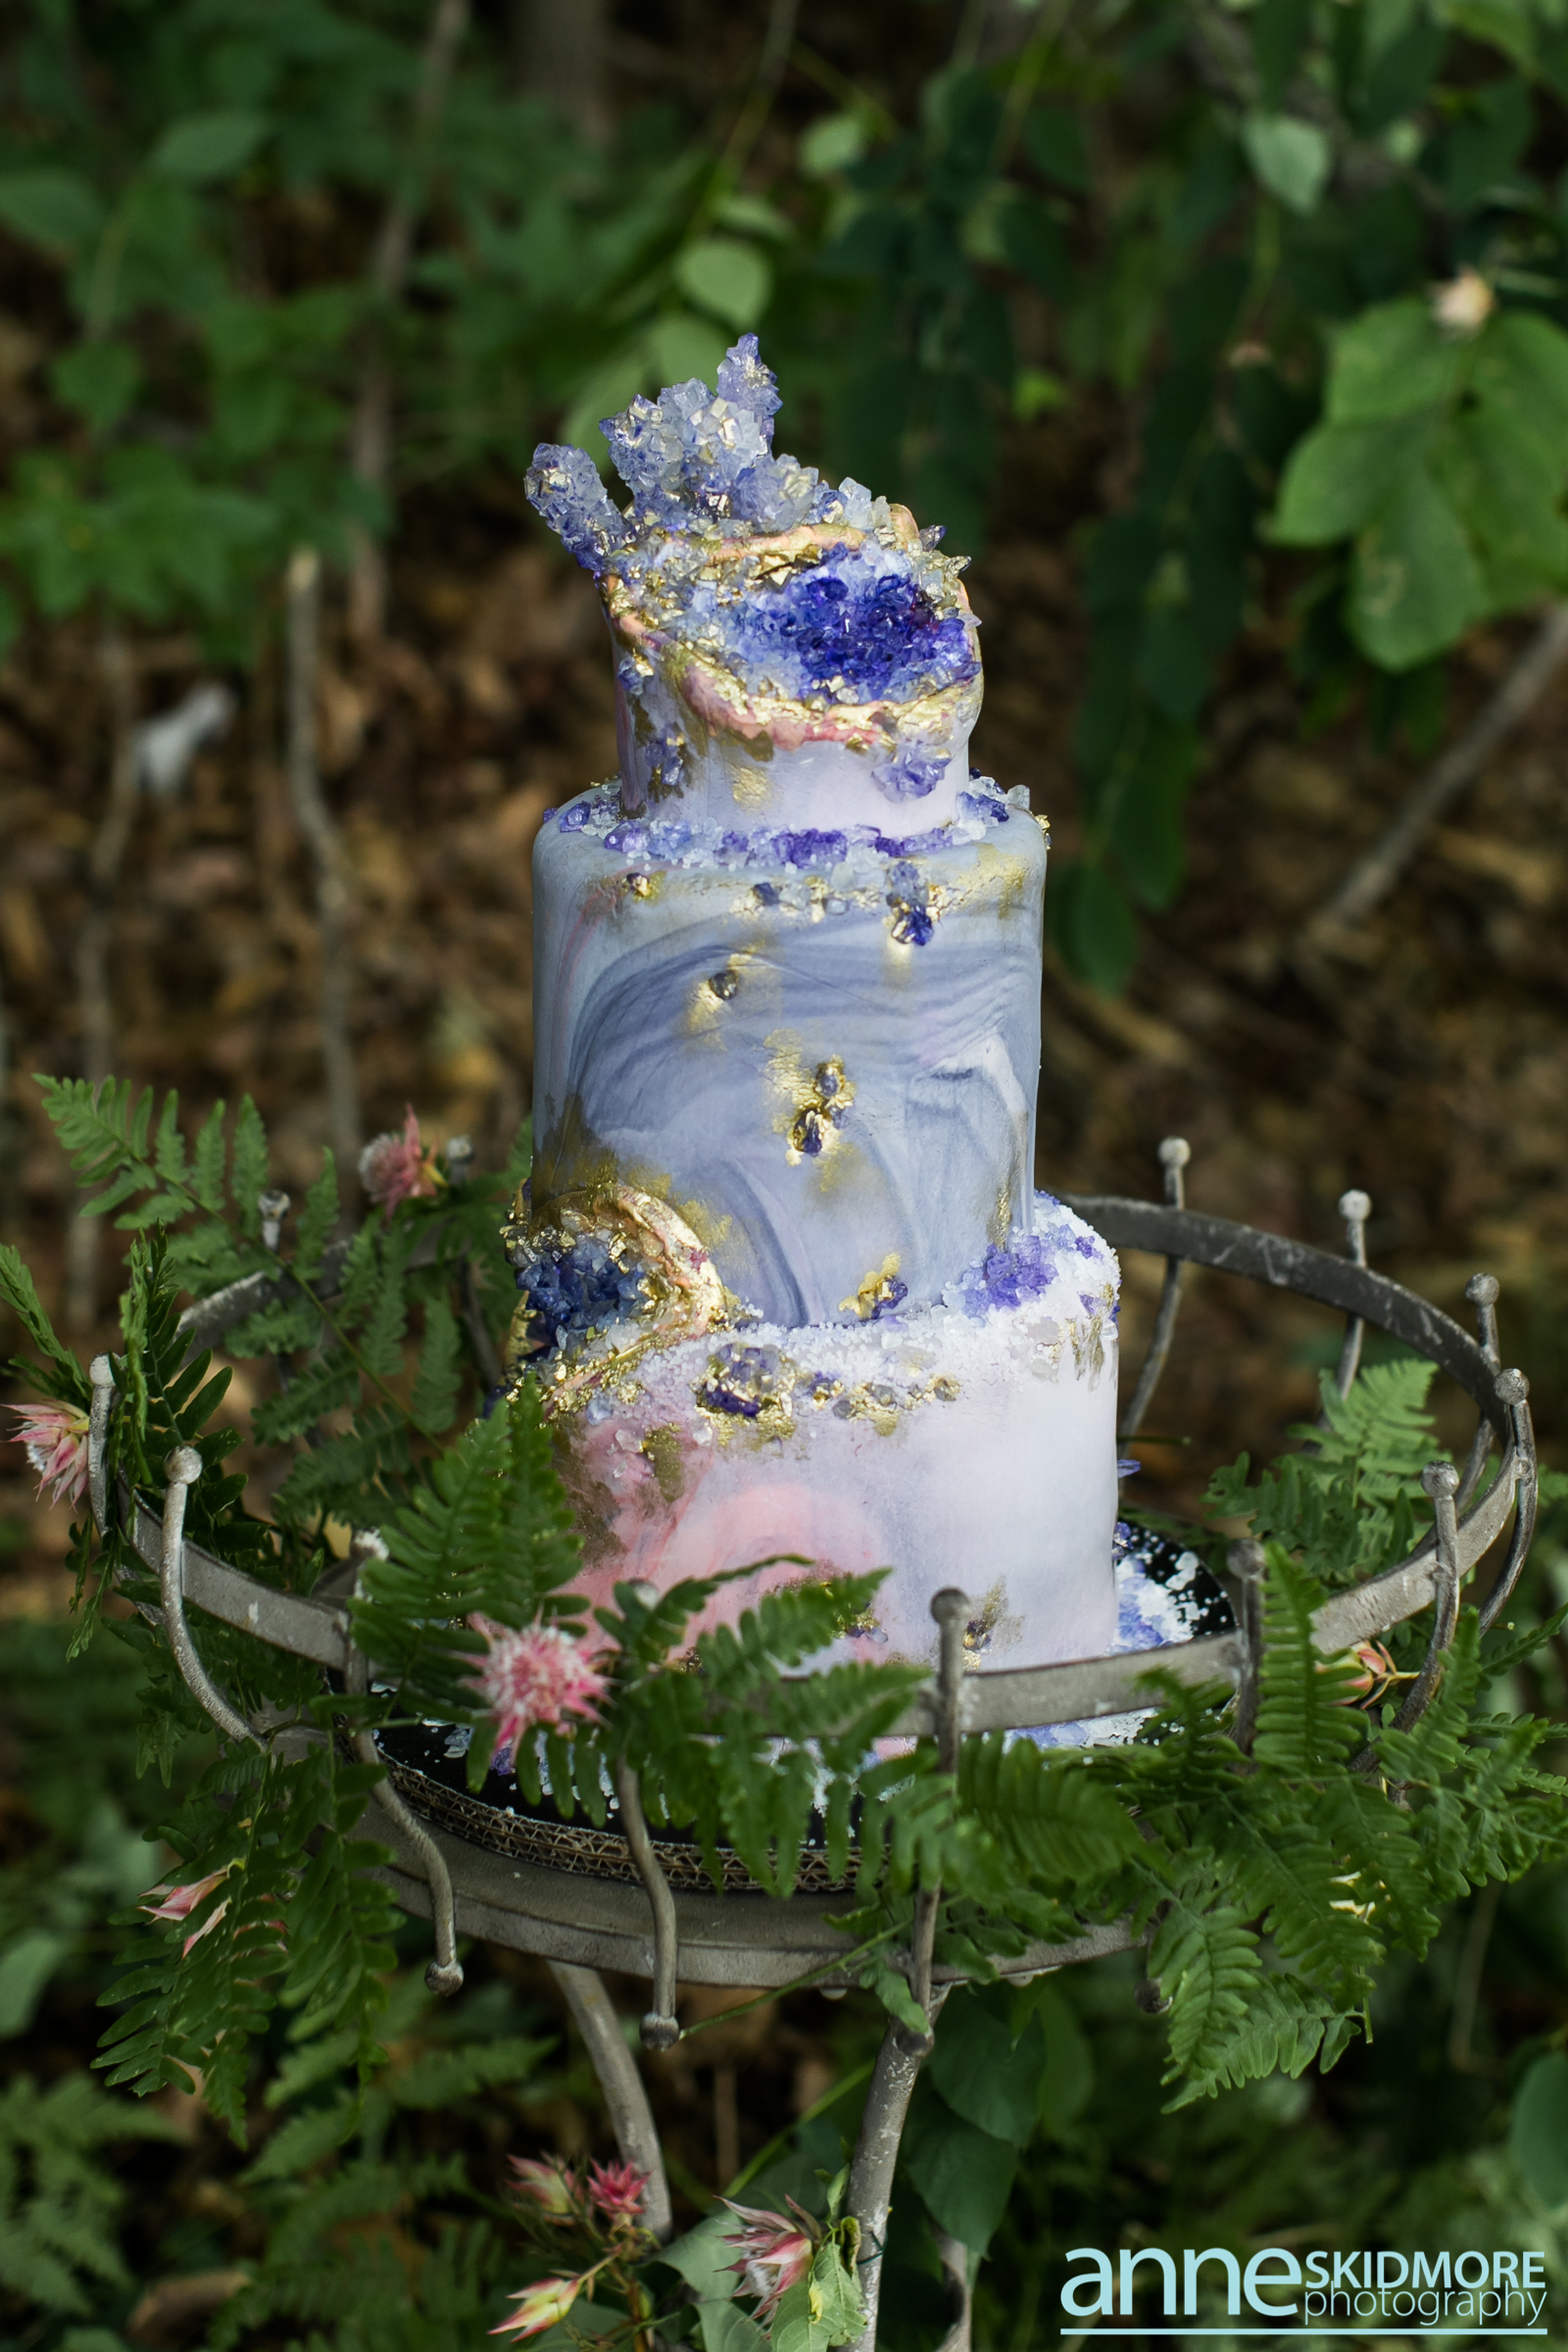 Blue marbled fondant wedding cake with blue crystals